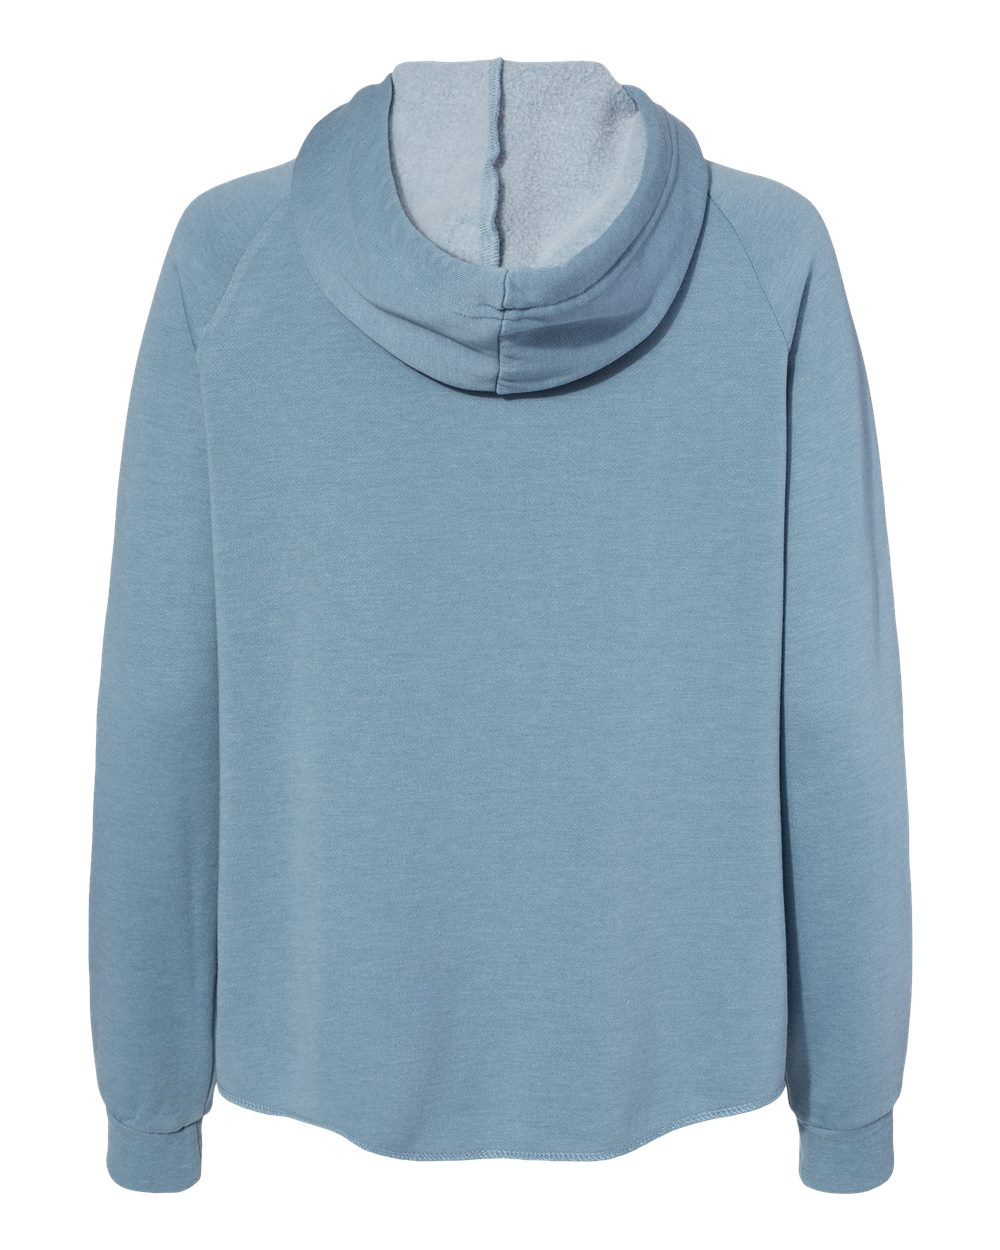 Independent-Trading-Co-Women-039-s-Wave-Wash-Full-Zip-Hooded-Sweatshirt-PRM2500Z thumbnail 14